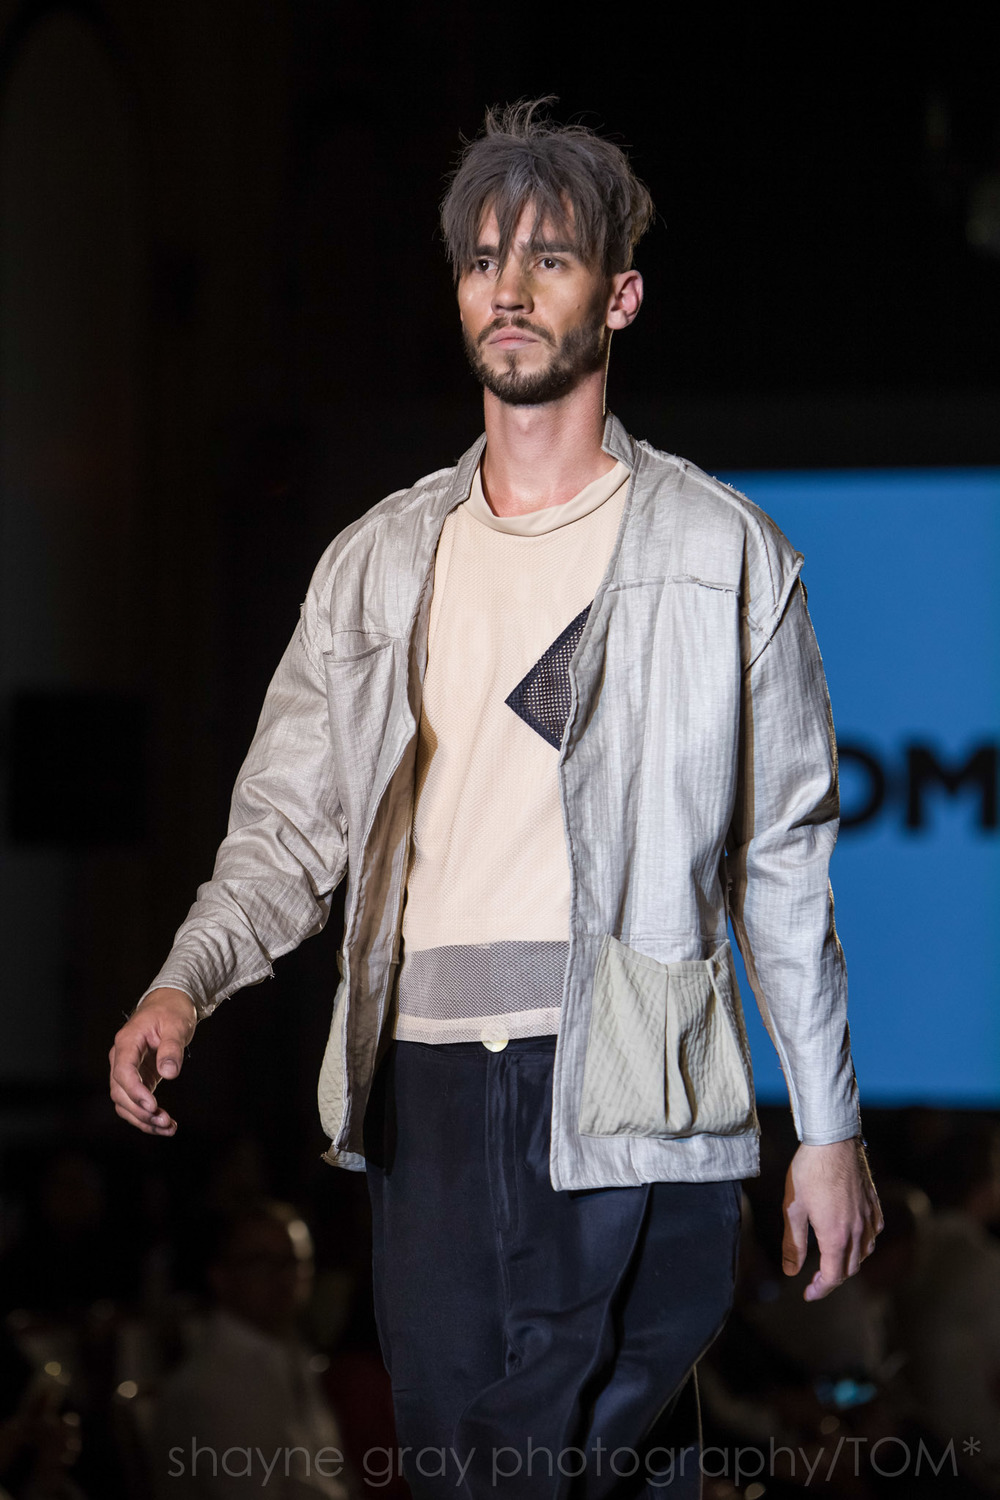 Shayne-Gray-Toronto-men's-fashion_week-TOM-jose-duran-7692.jpg